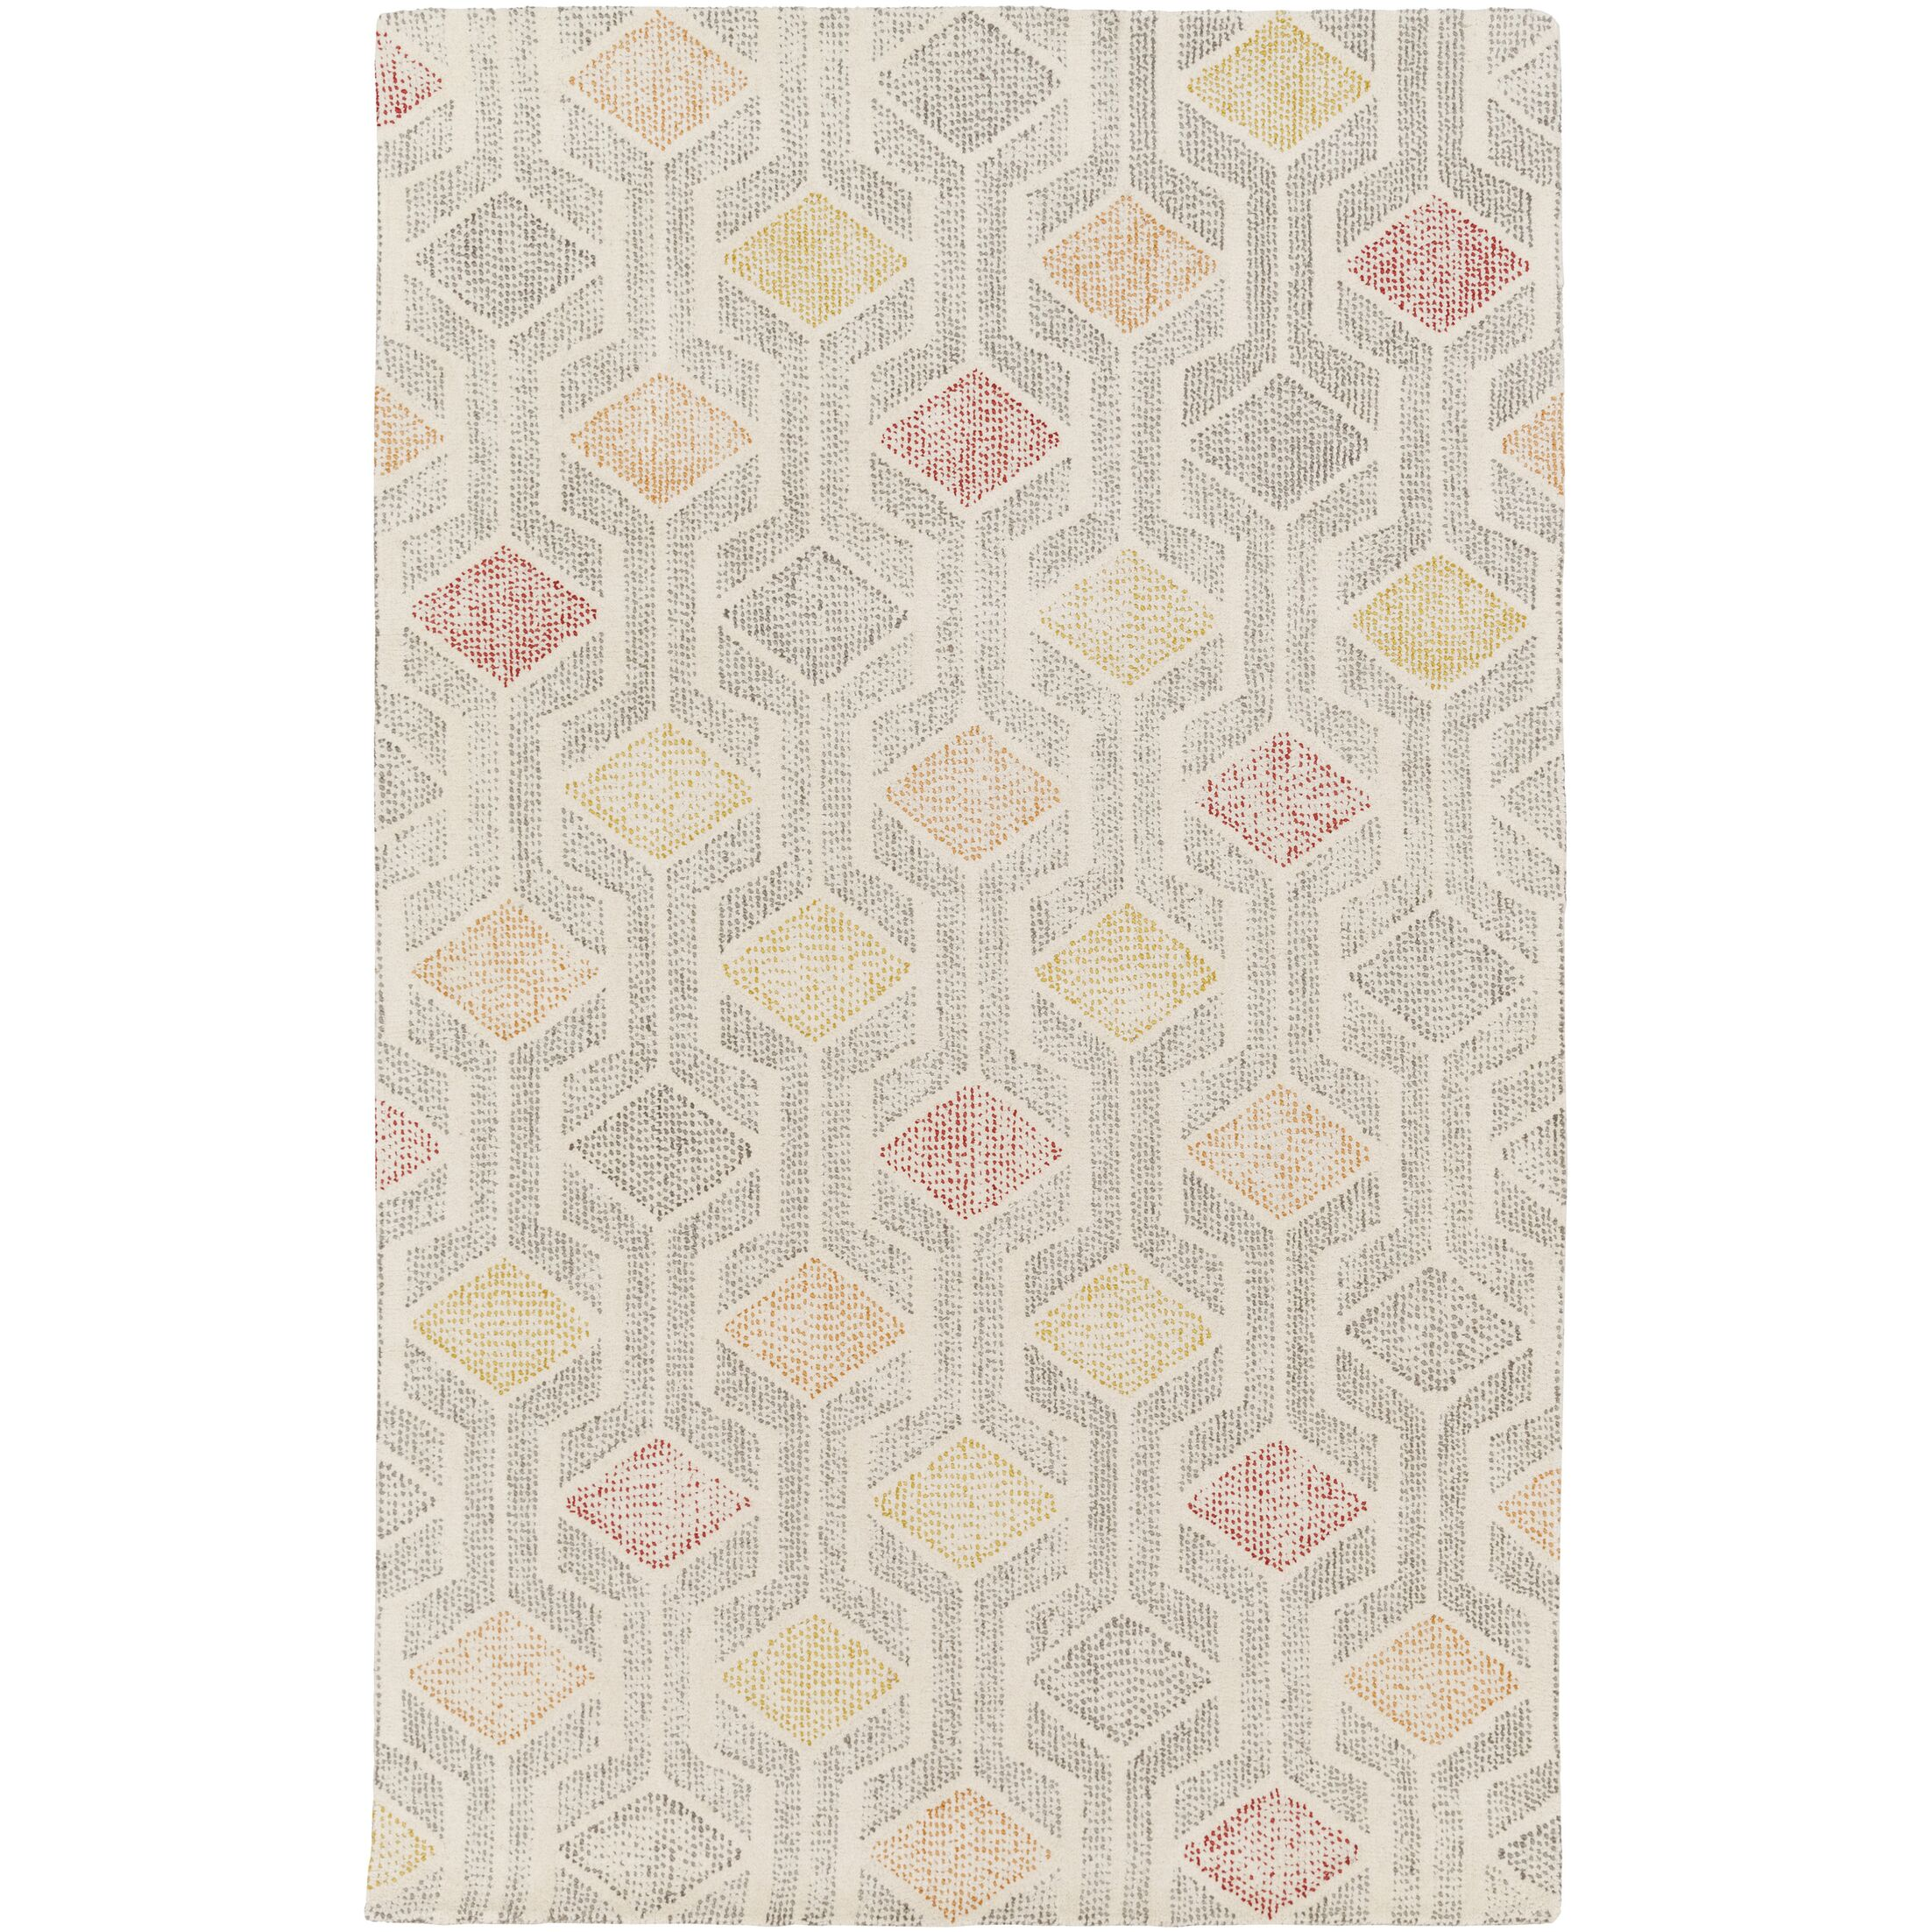 Madero Hand-Tufted Ivory/Gray Area Rug Rug Size: Rectangle 8' x 10'